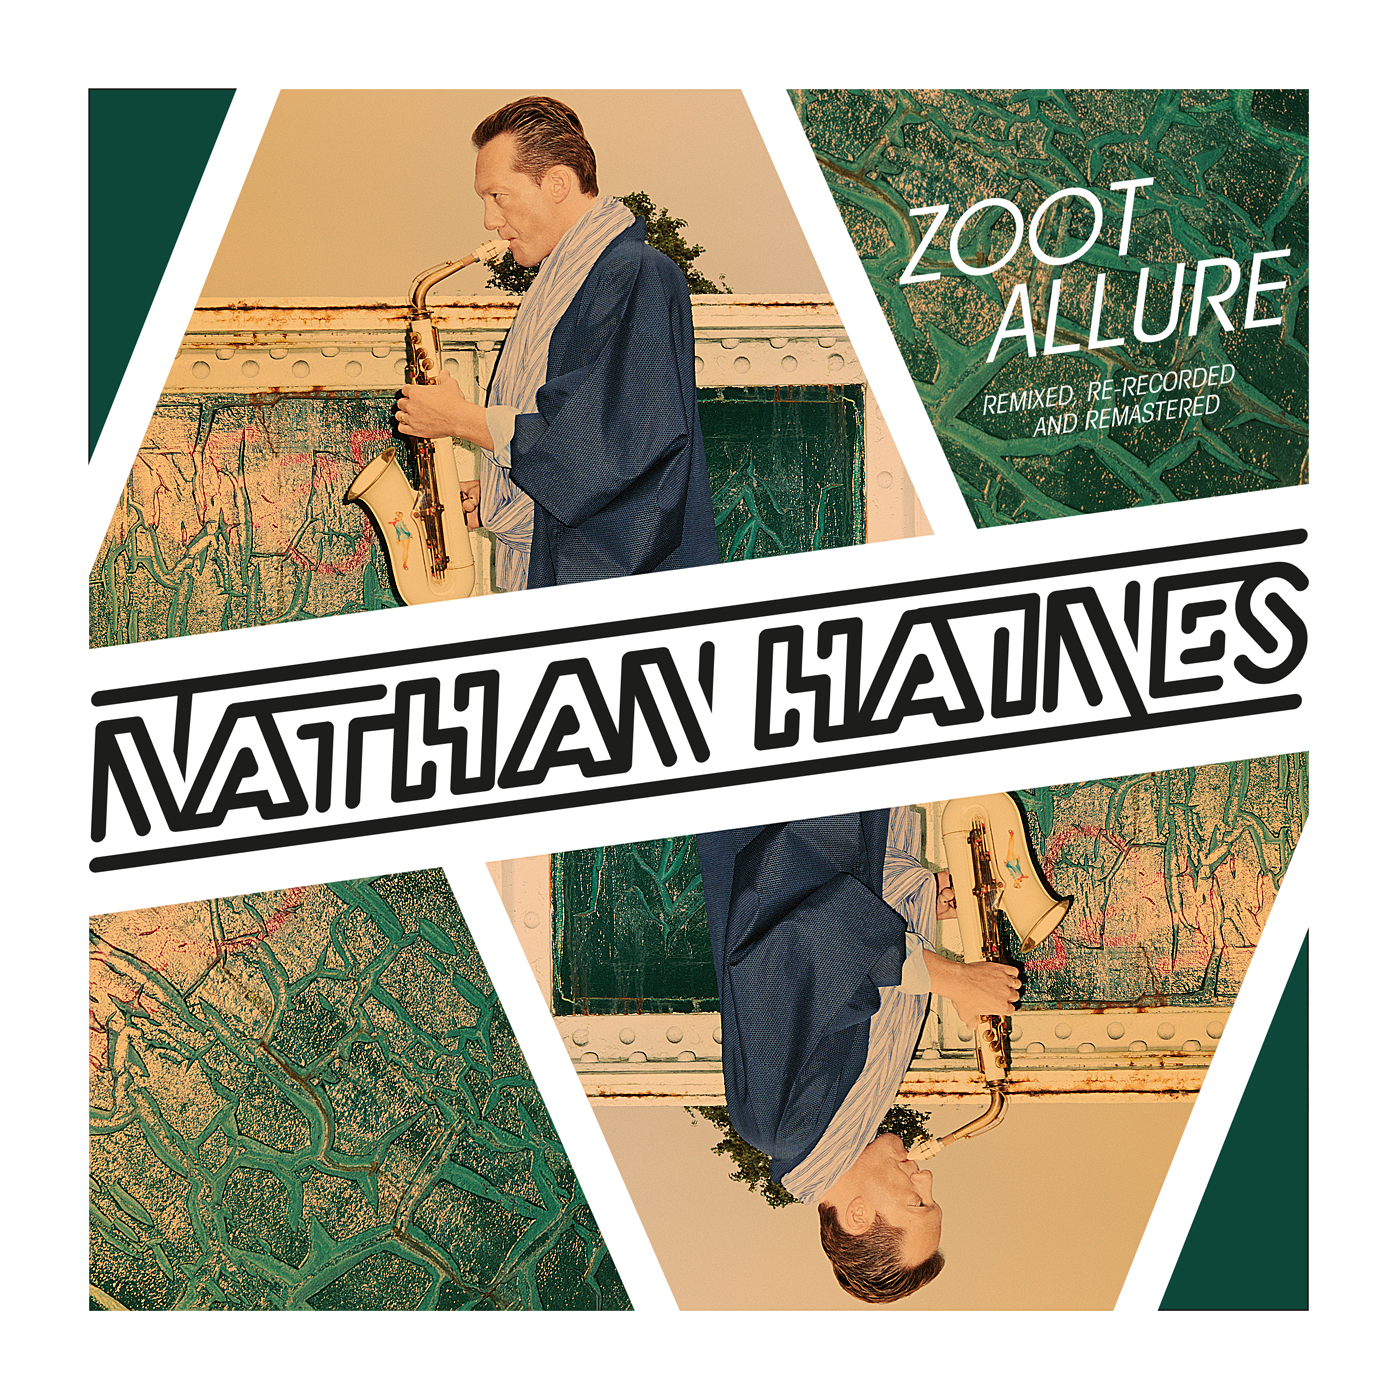 Nathan Haines Zoot Allure Cover 1400px.jpg